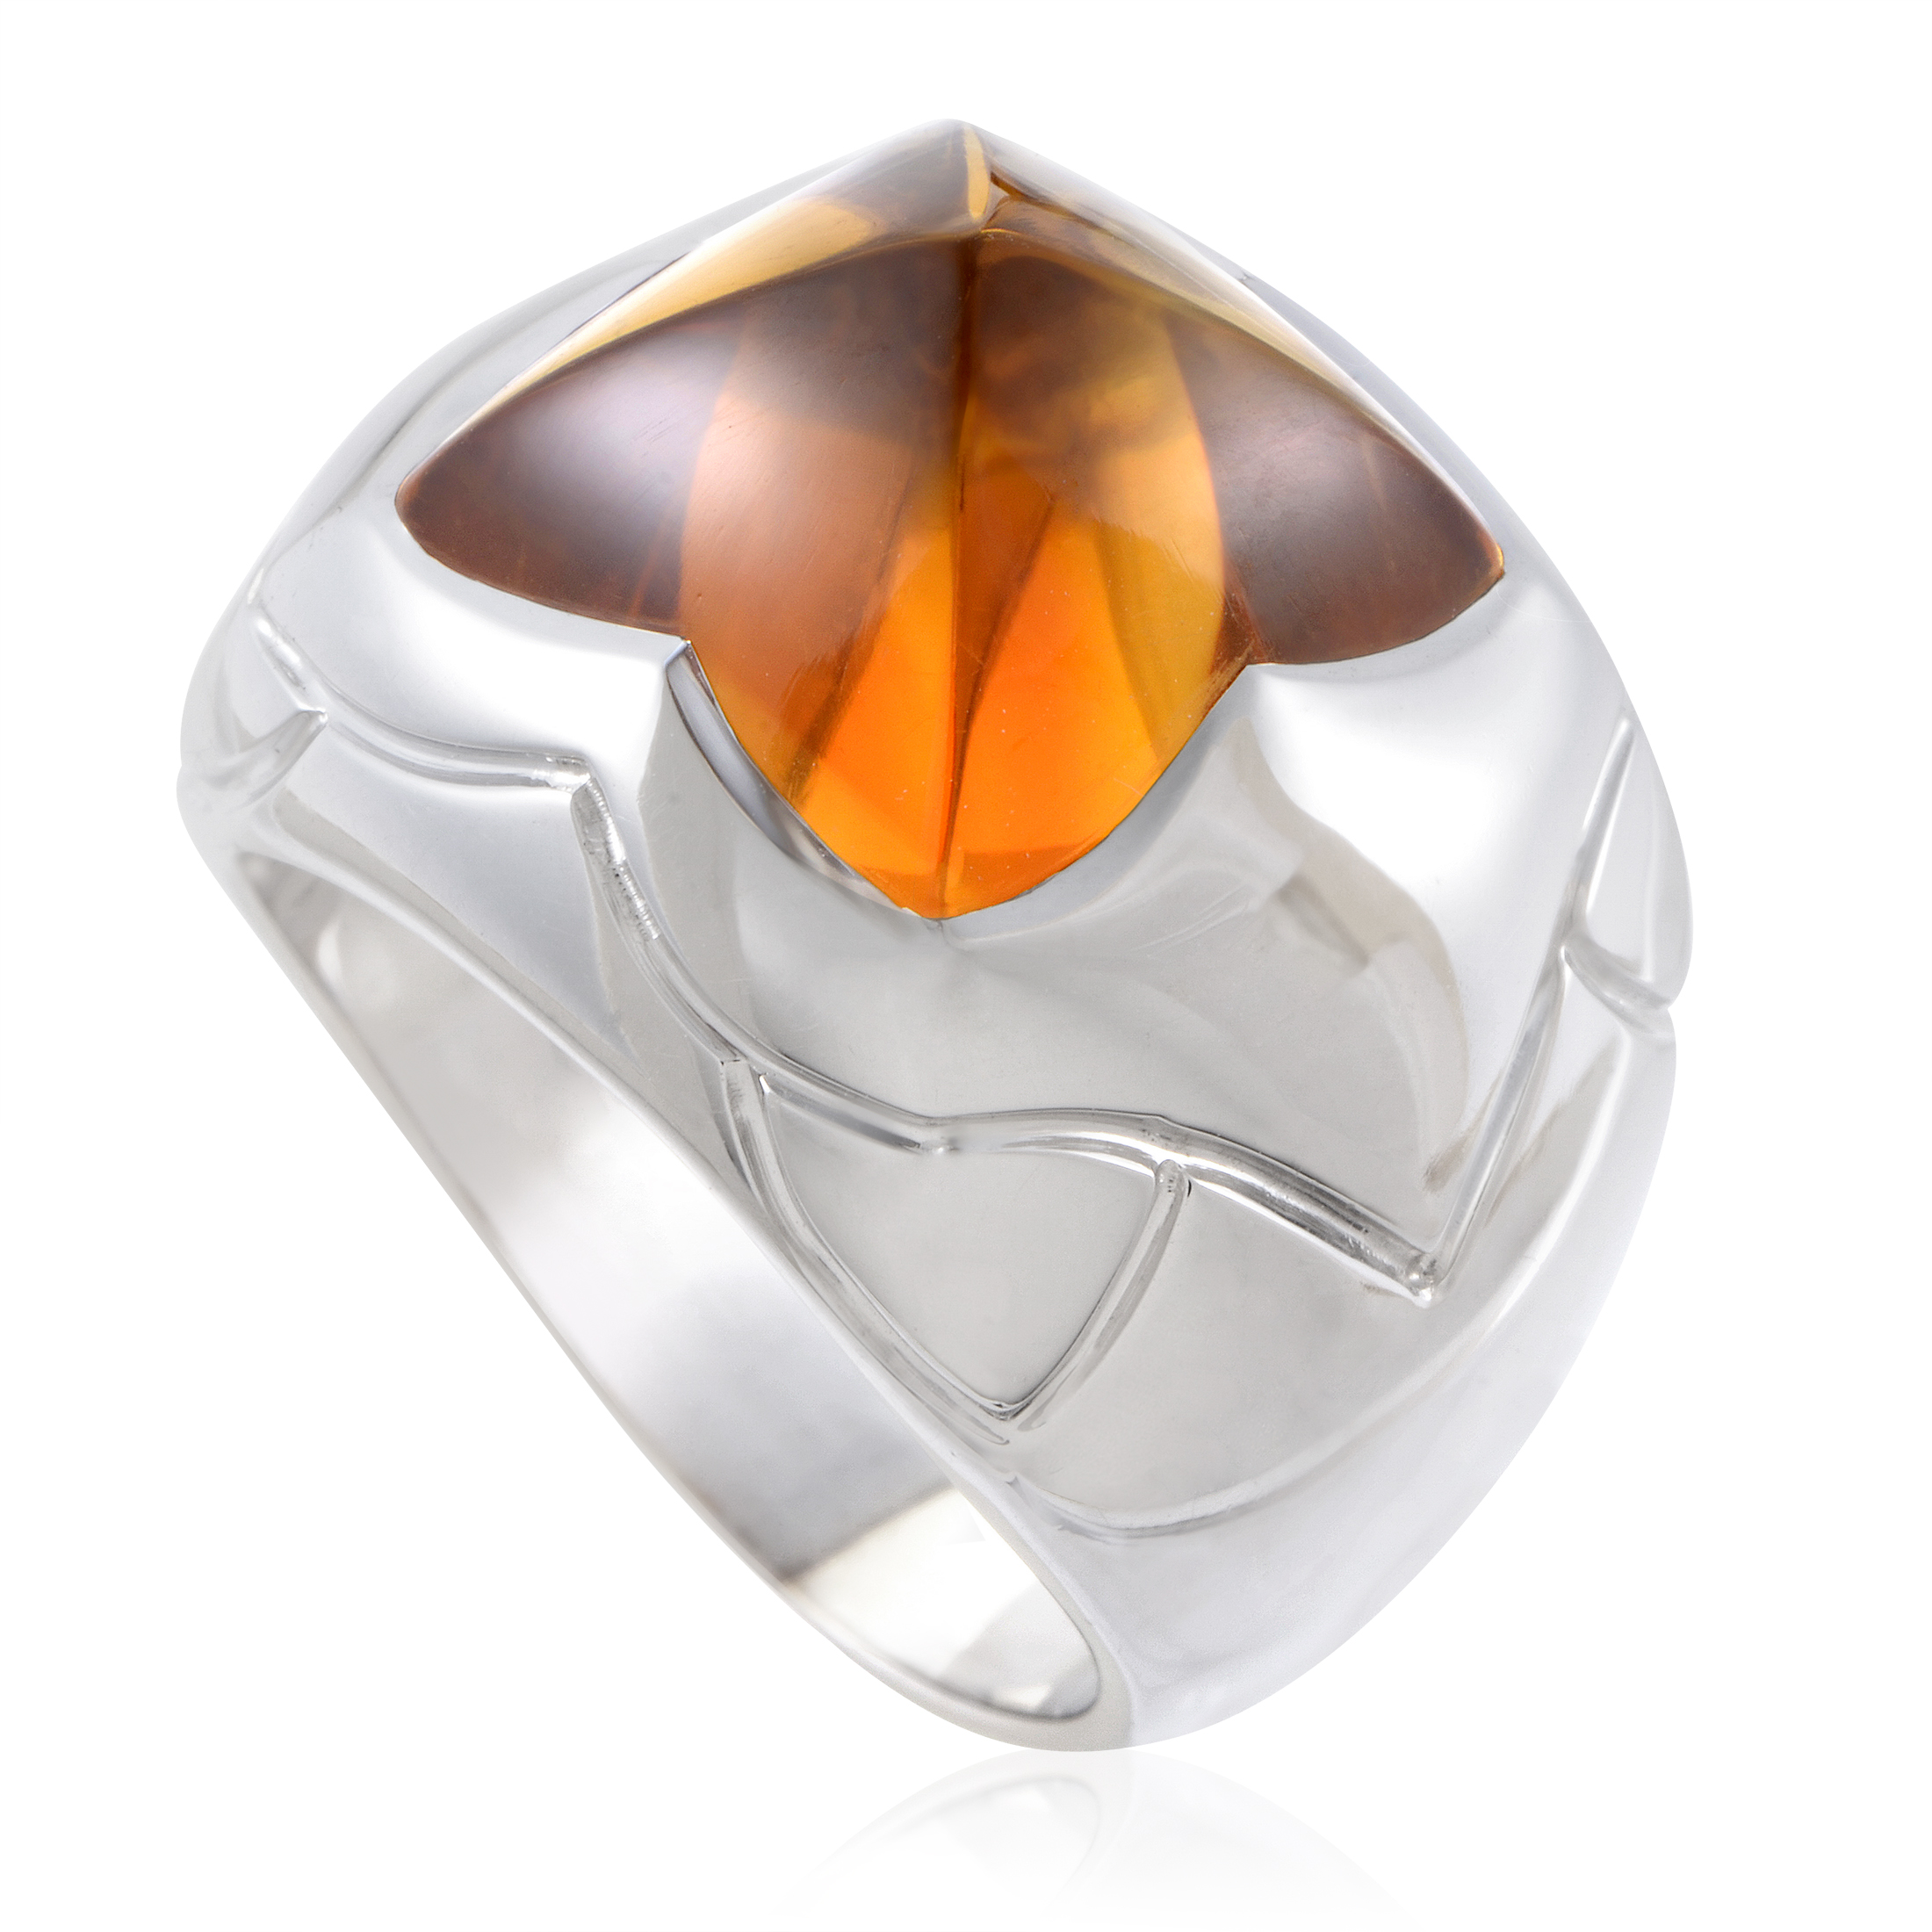 Bvlgari Piramide Women's 18K White Gold Citrine Ring